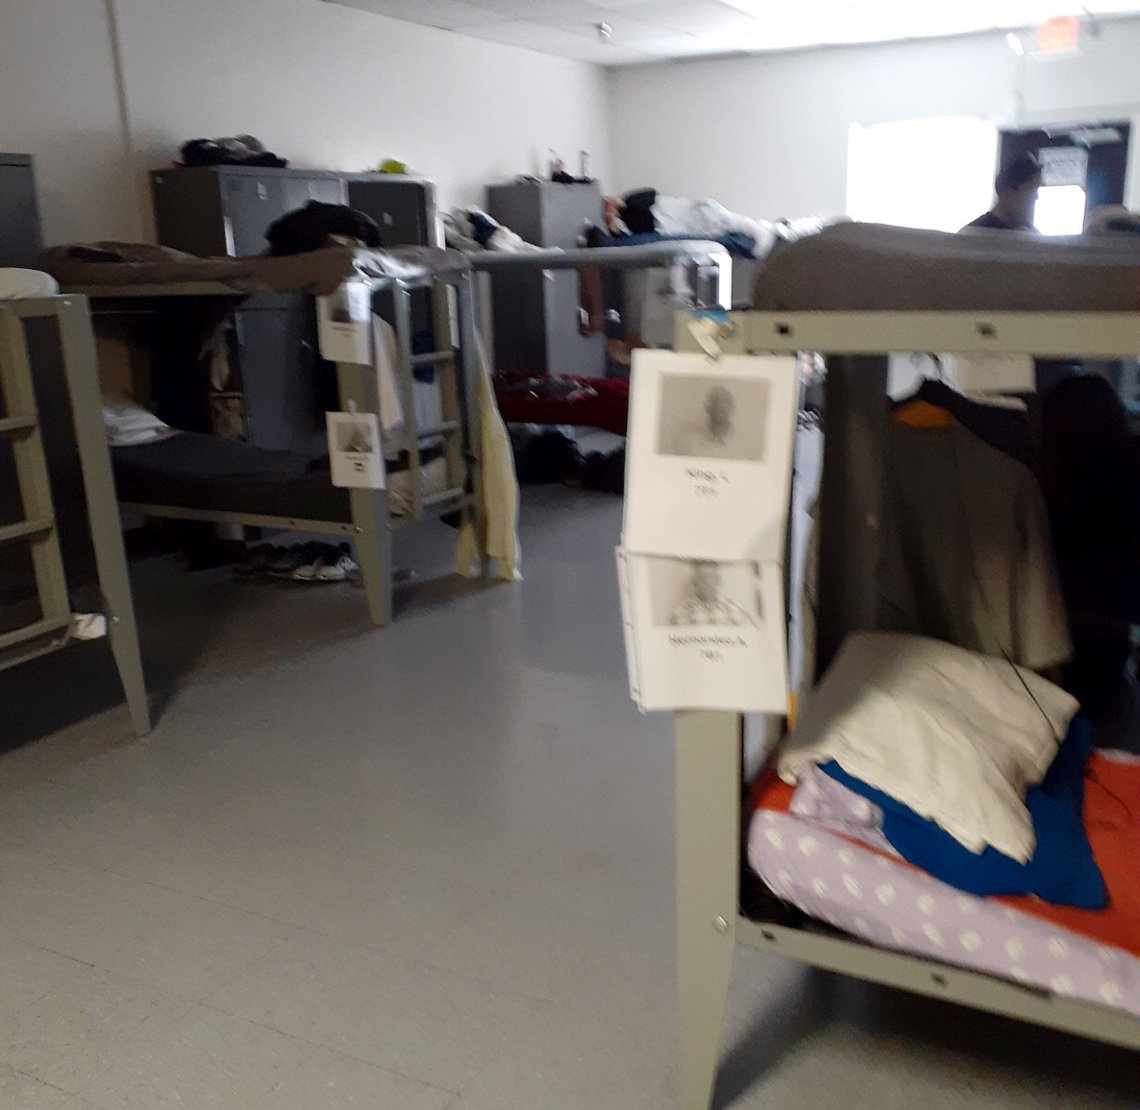 Residents sleep in double-bunks spaced a few feet apart in Orion House, where social distancing is virtually impossible.